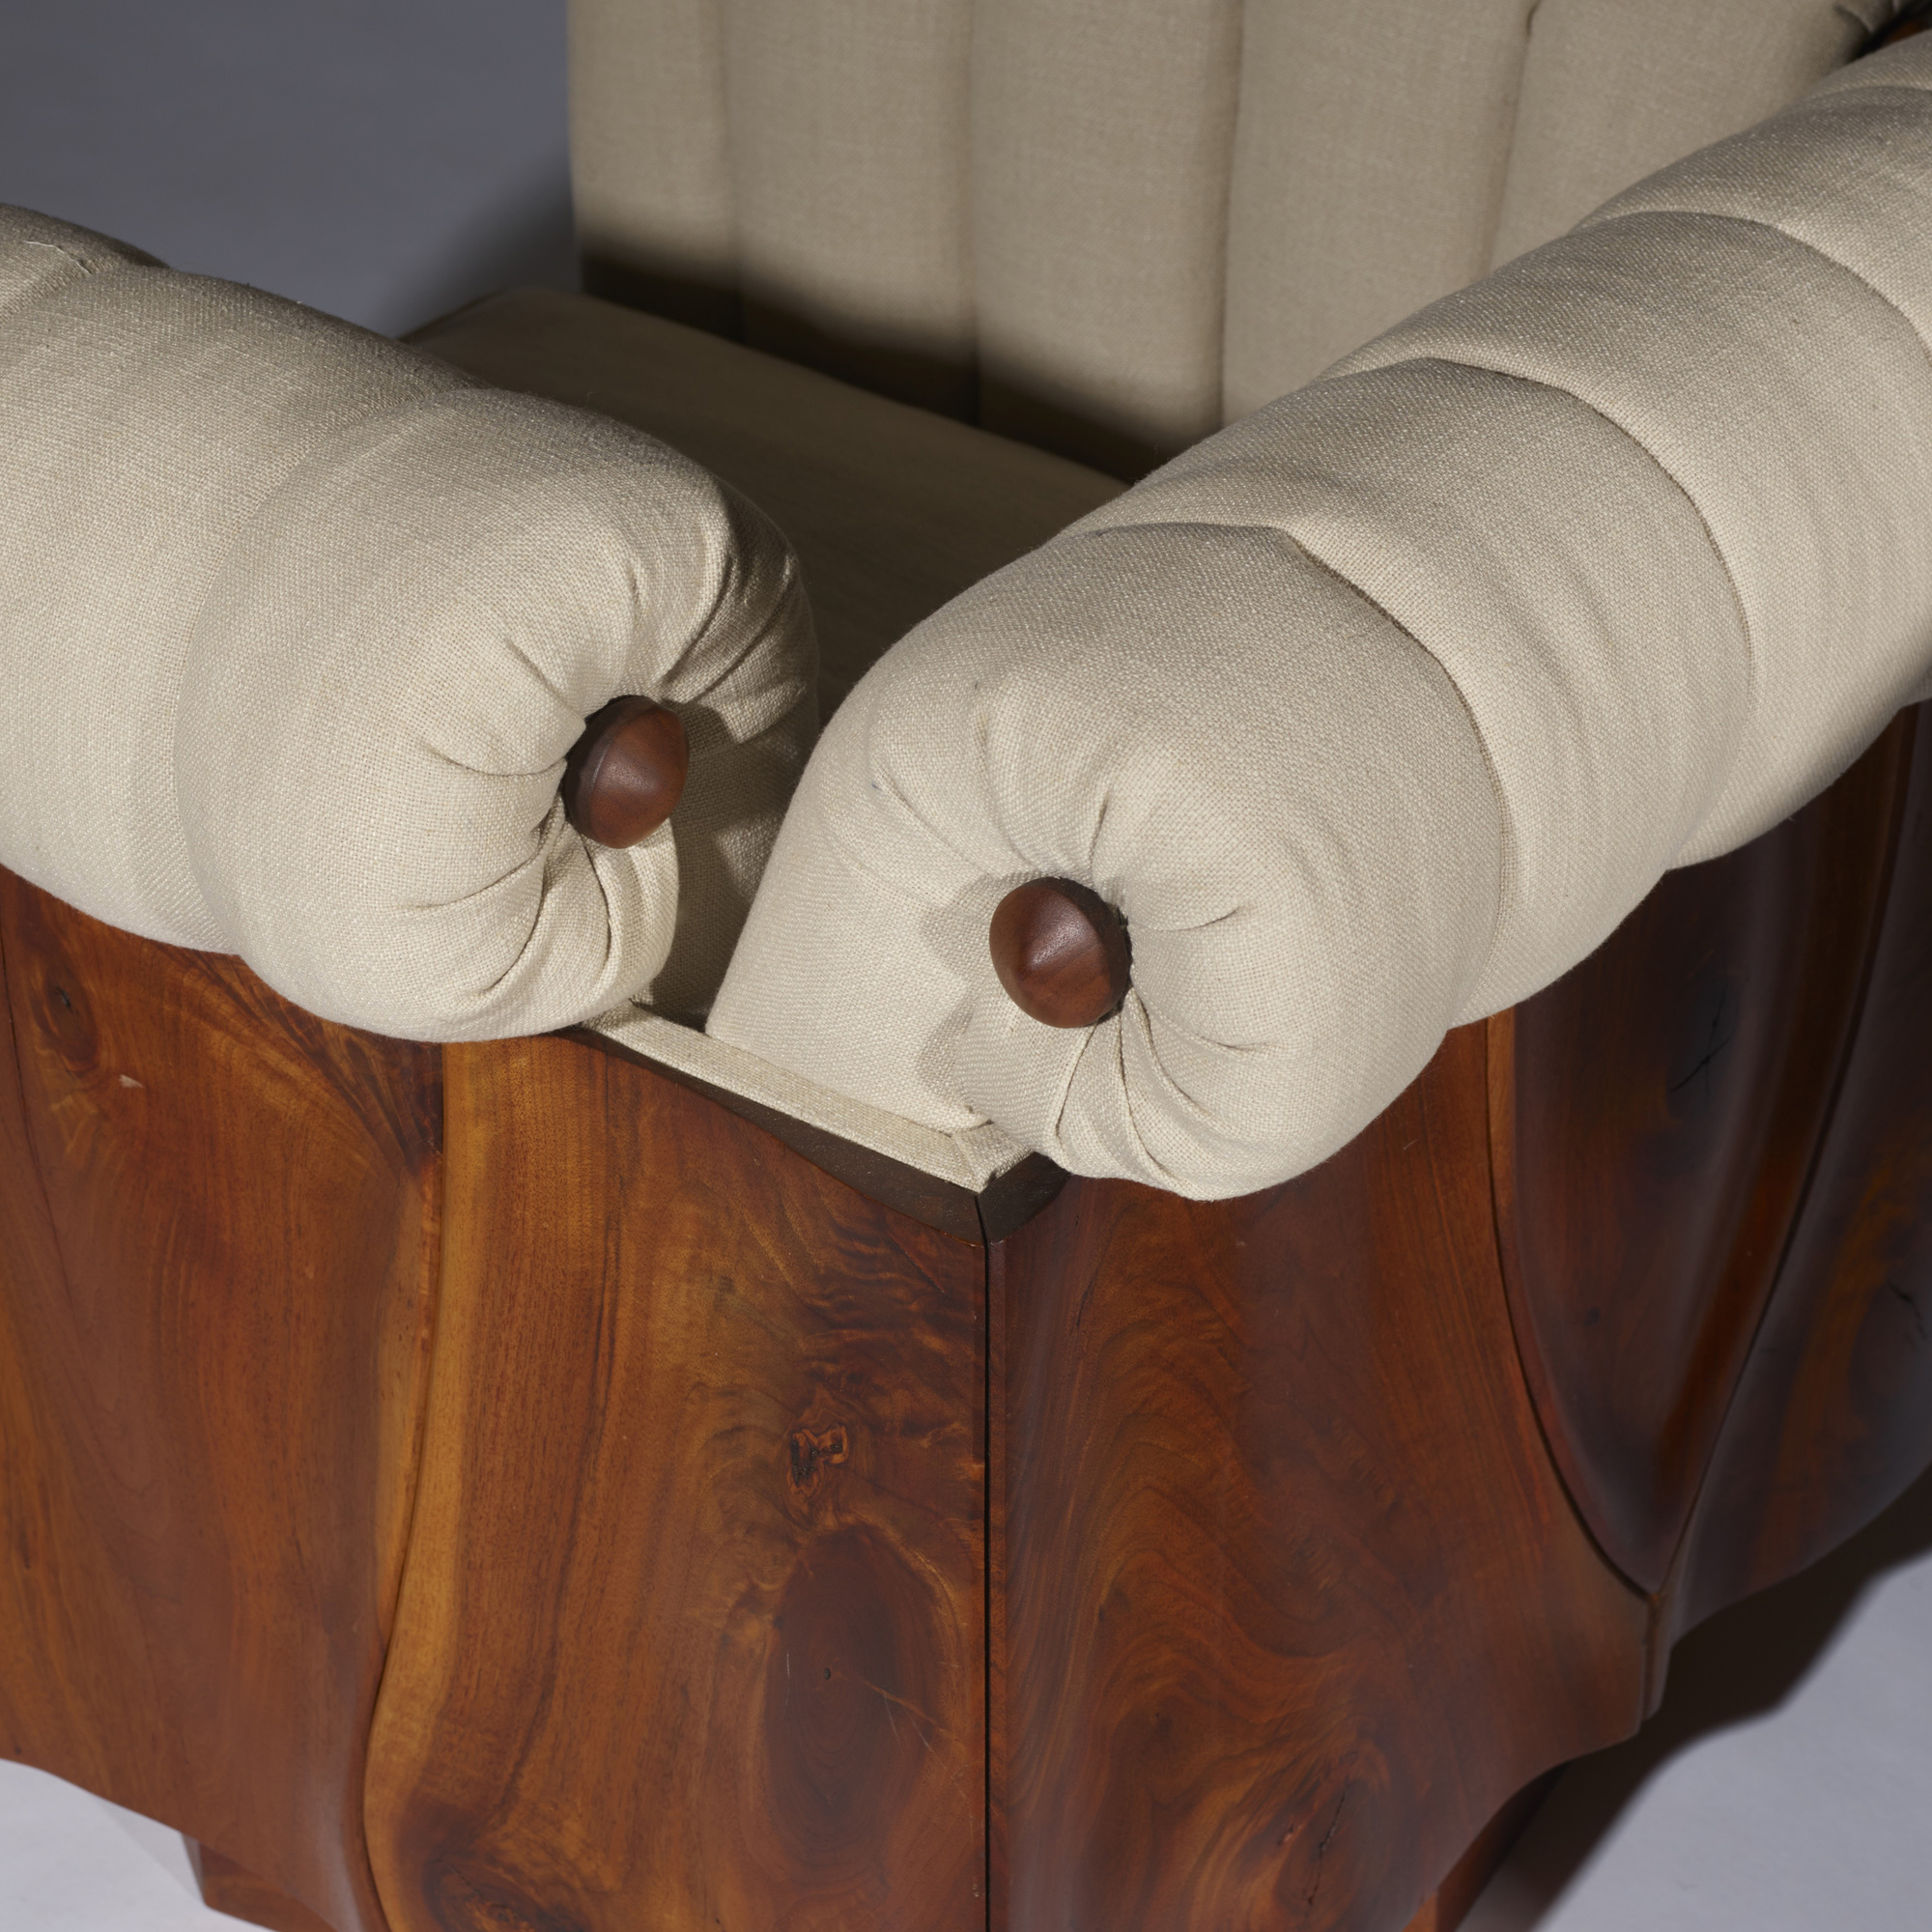 40: Phillip Lloyd Powell / Rare carved panel lounge chairs, pair (4 of 5)